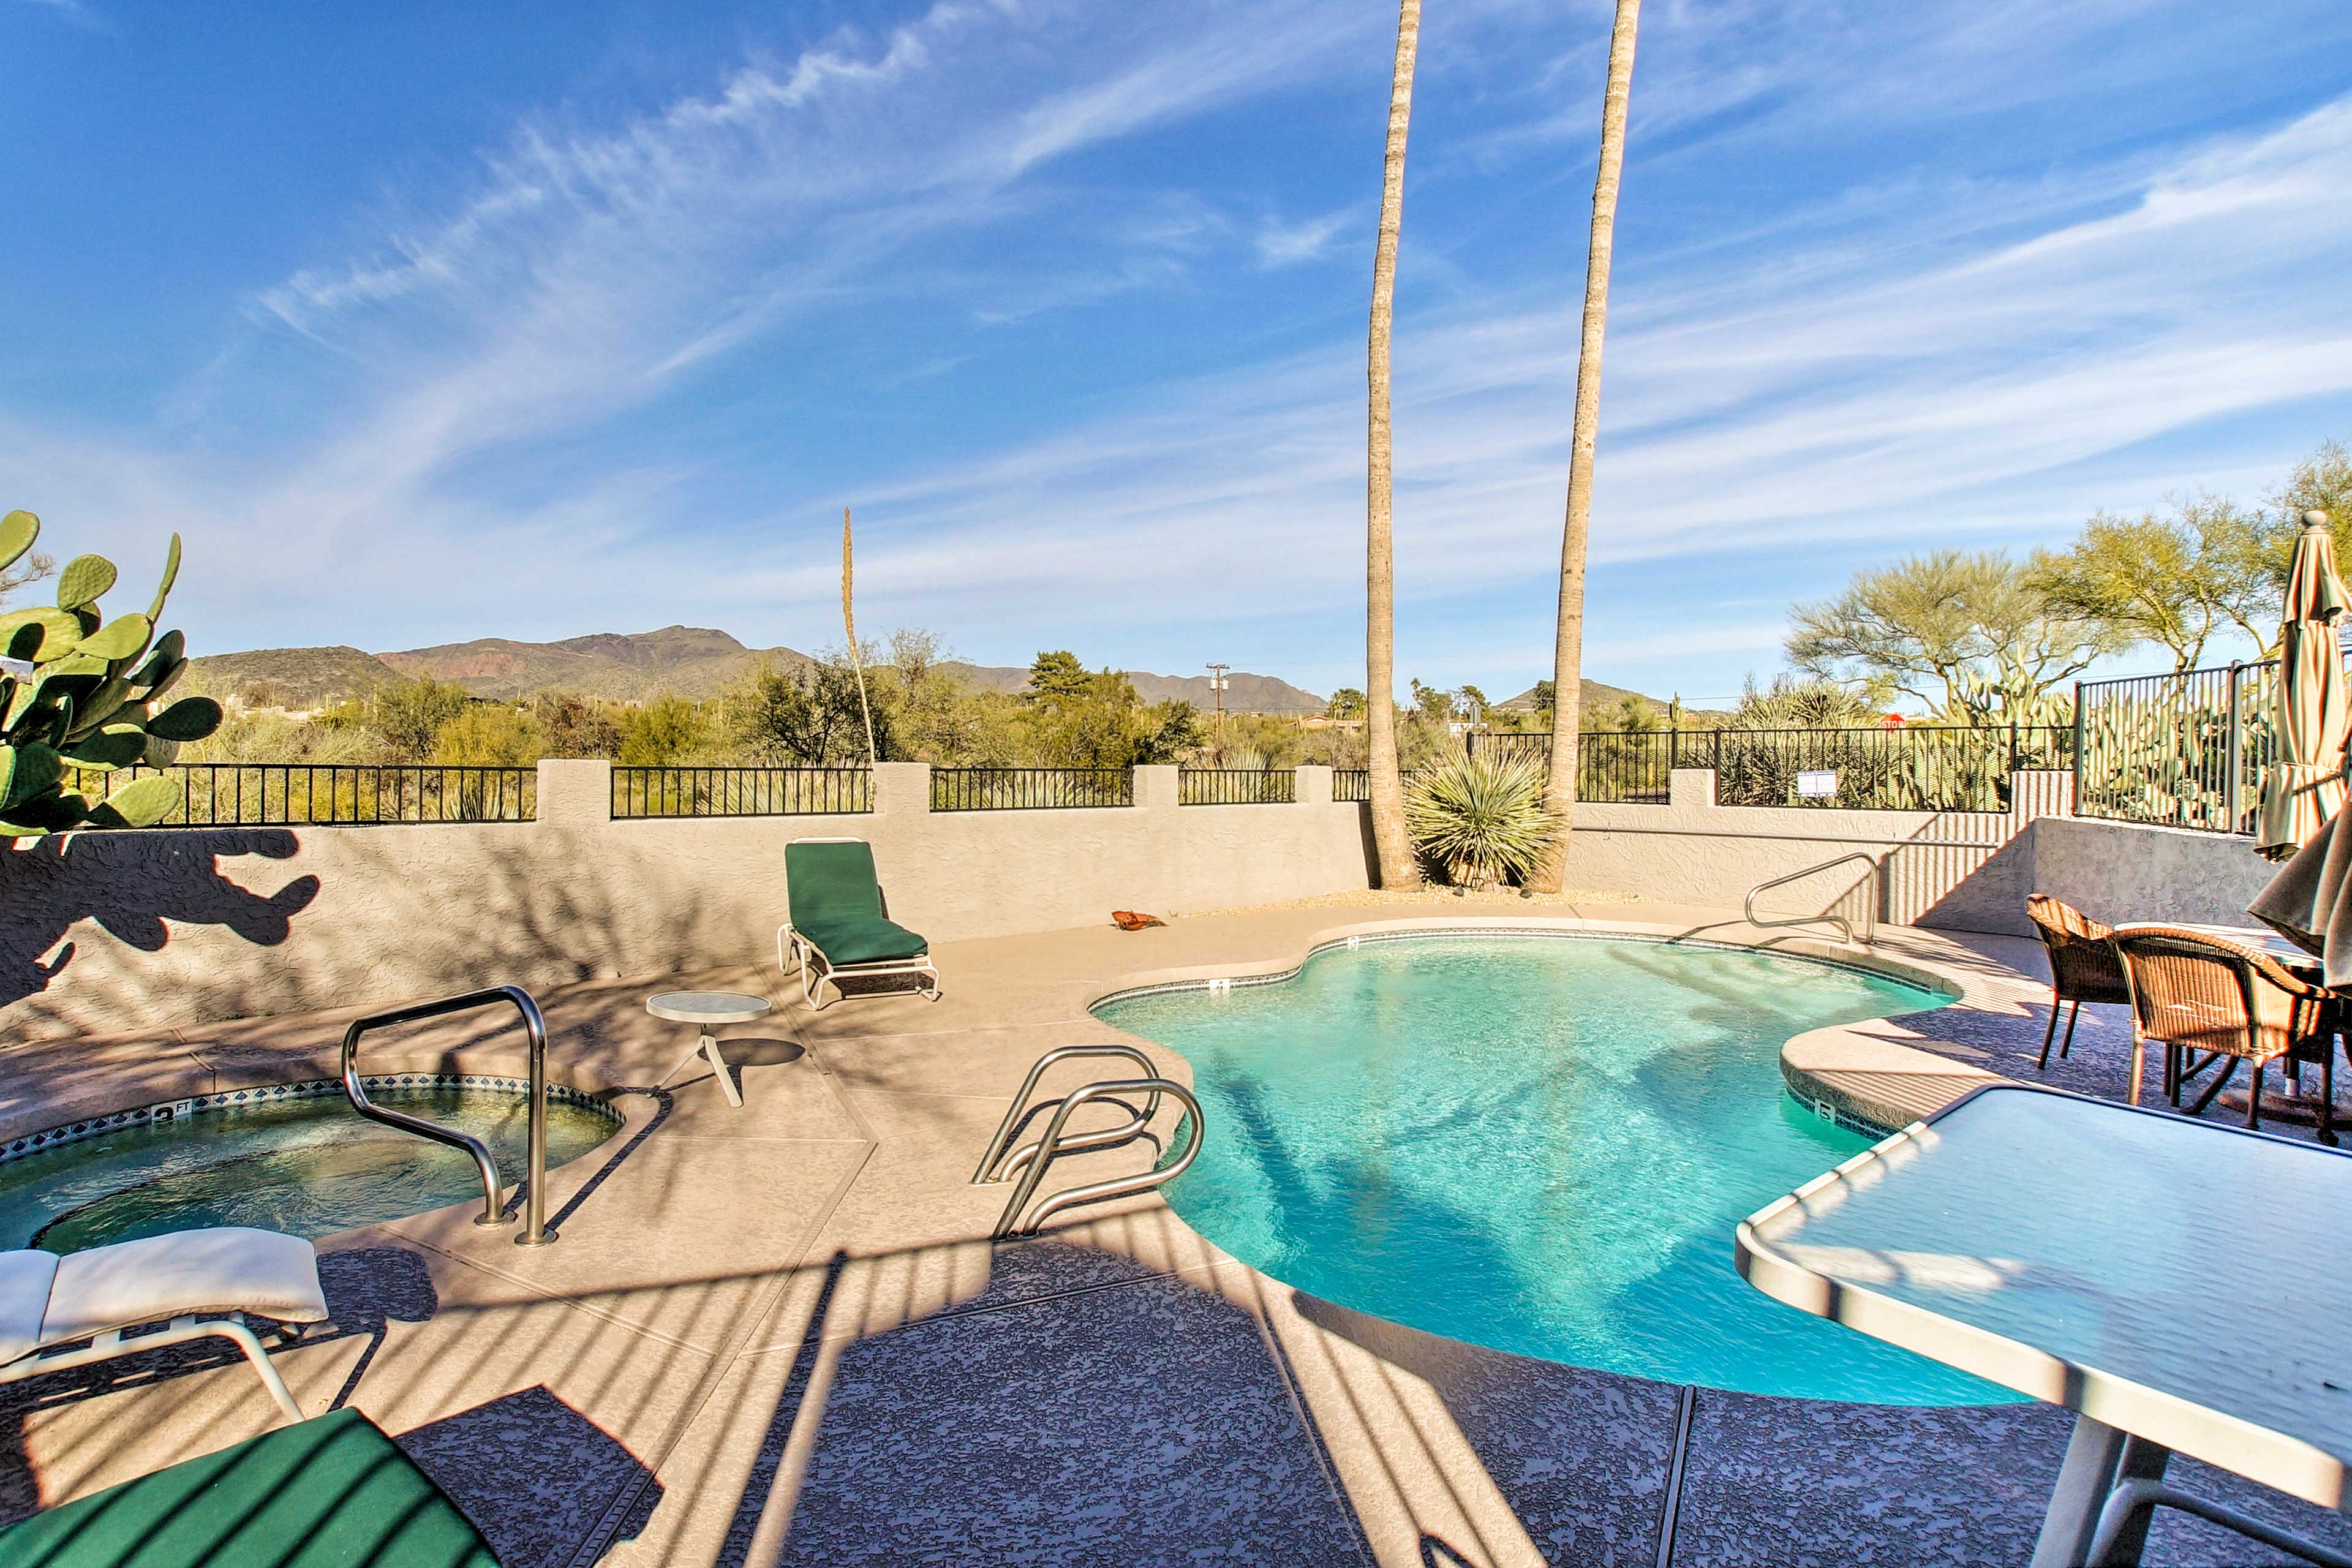 The community pool and hot tub are a short walk away.